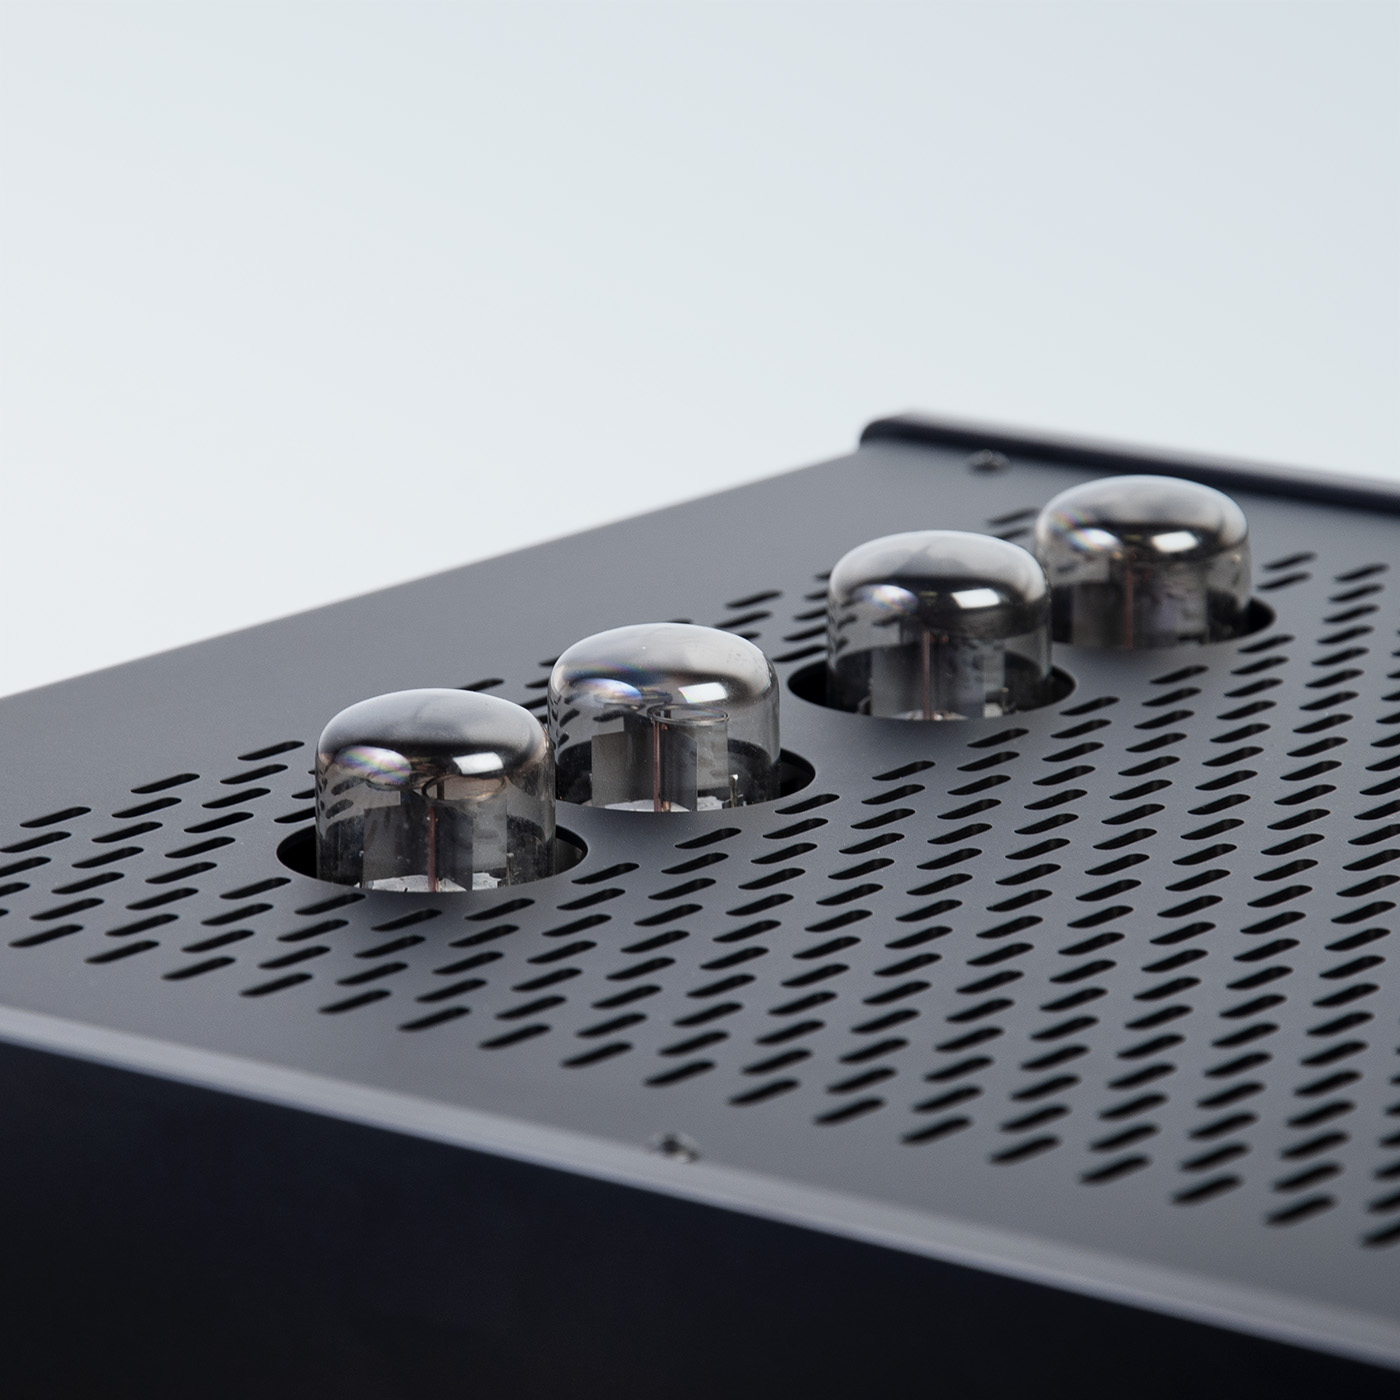 LTA Zotl 40 Amplifier